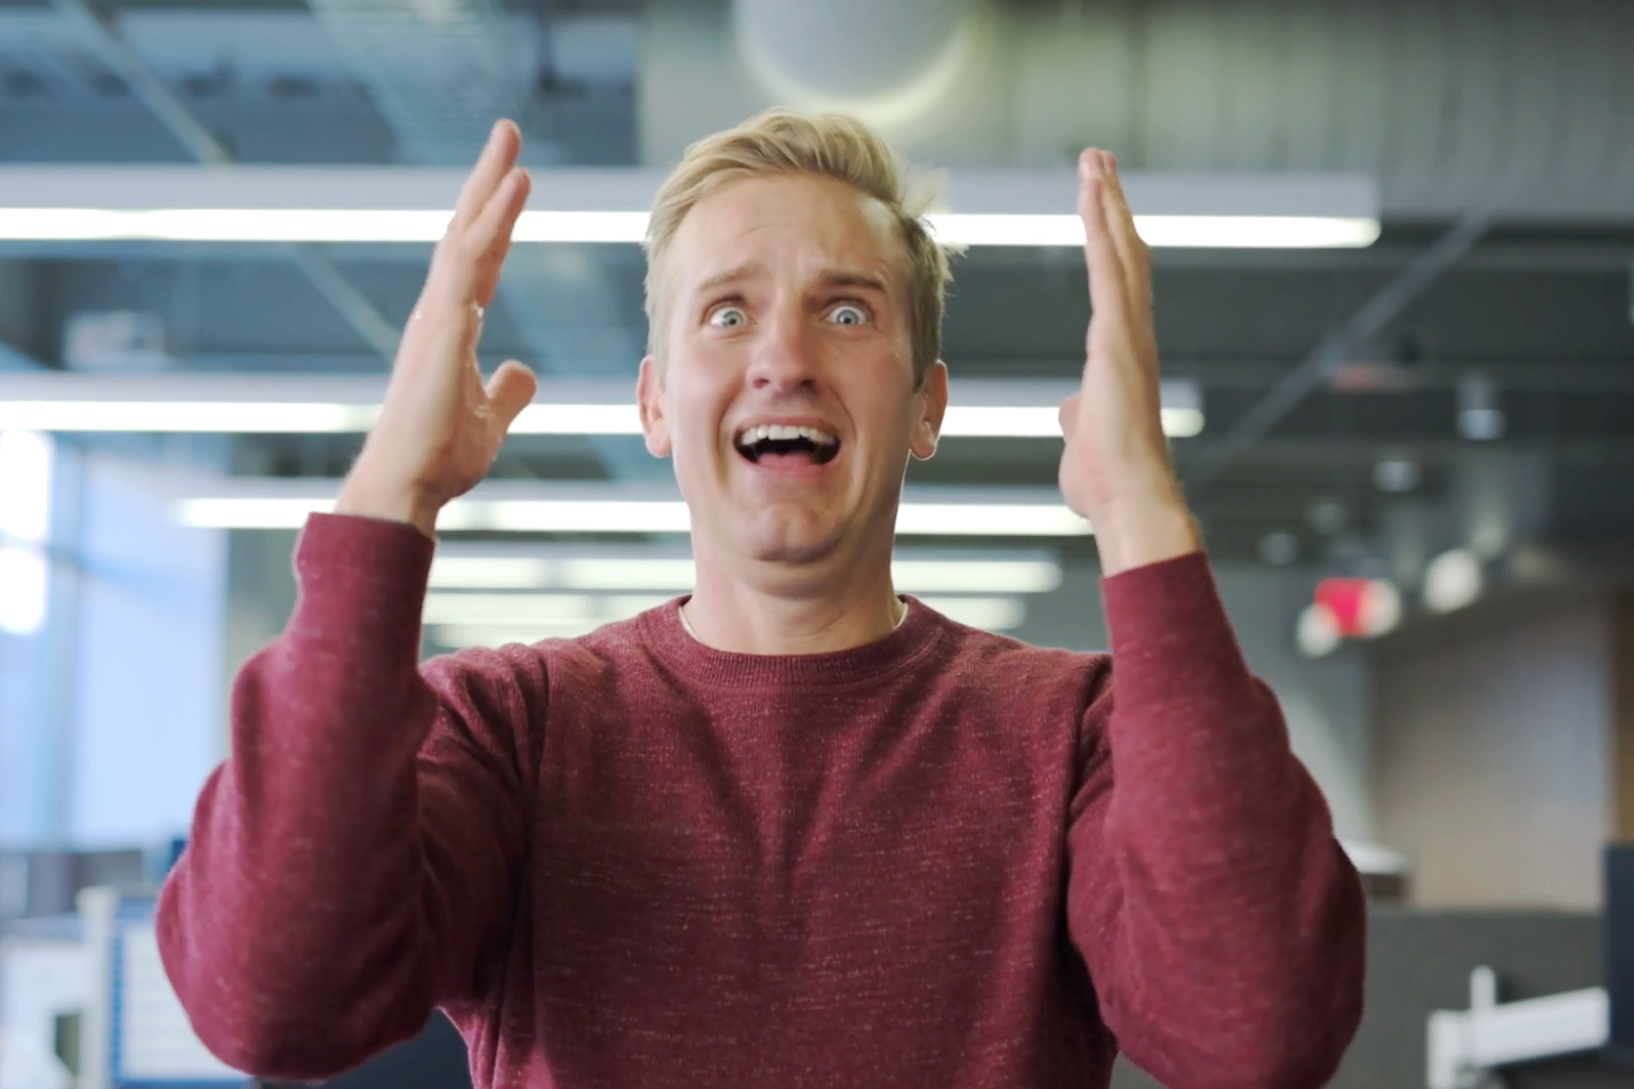 Watch: Empower's CEO does his best impression of 'Home Alone'